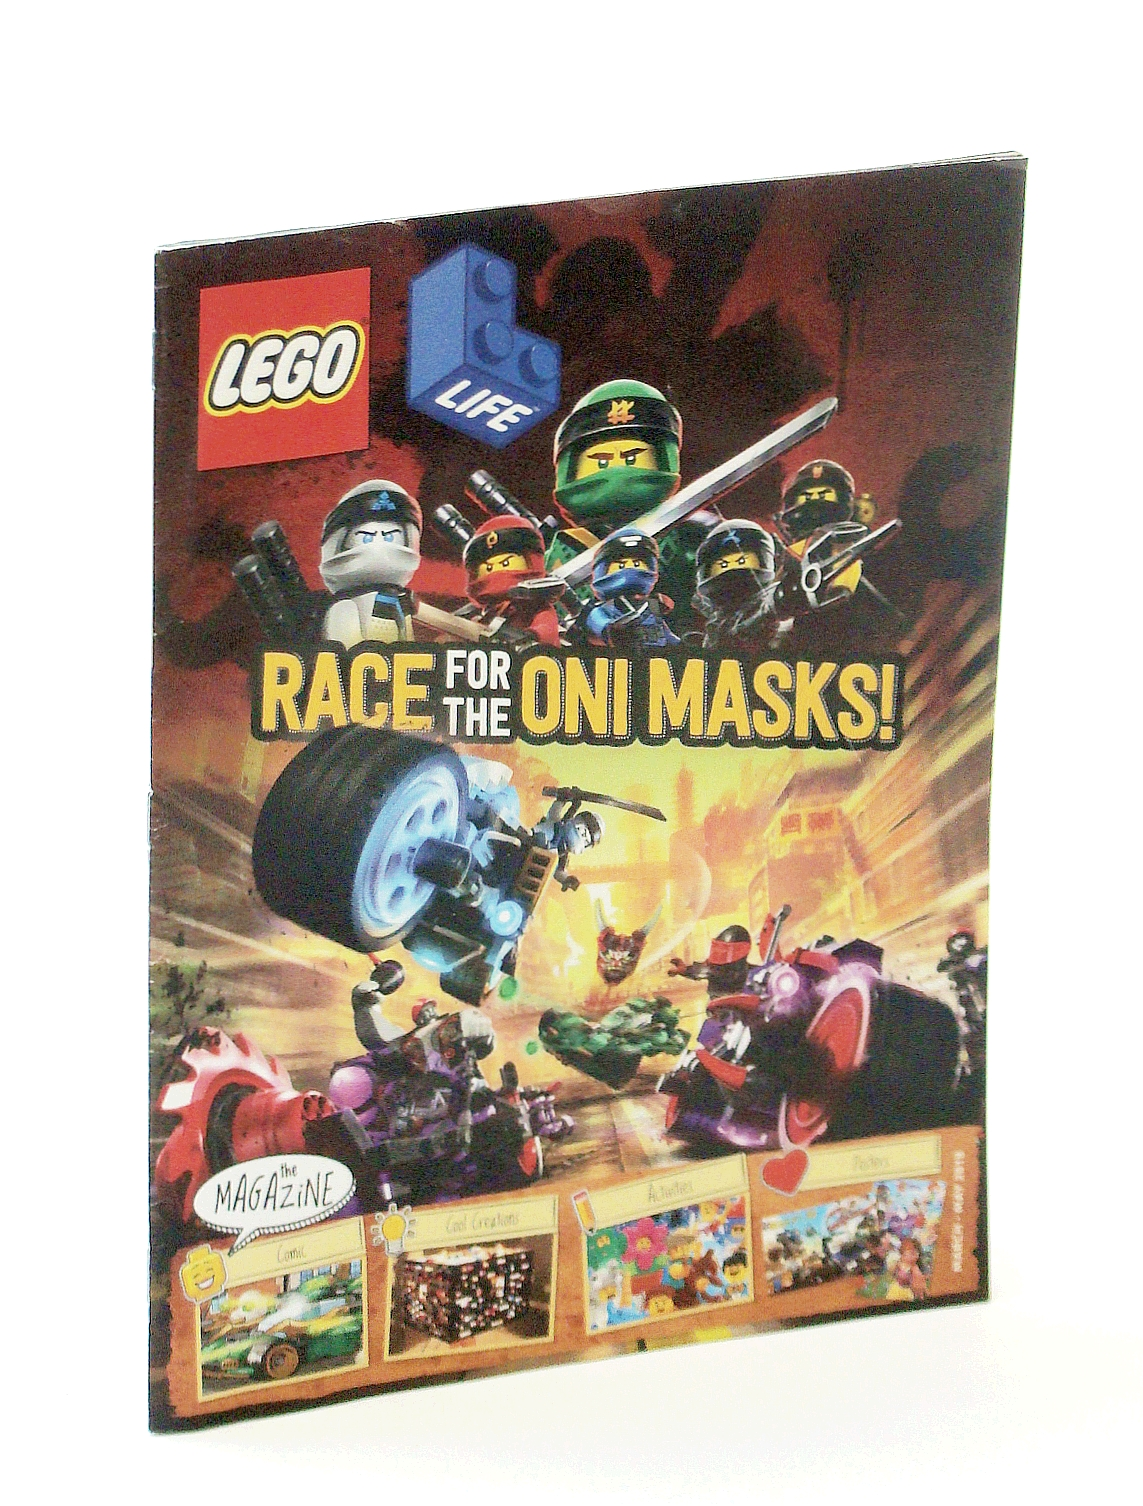 Image for Lego Life Magazine, March - May 2018: Race for the Oni Masks!